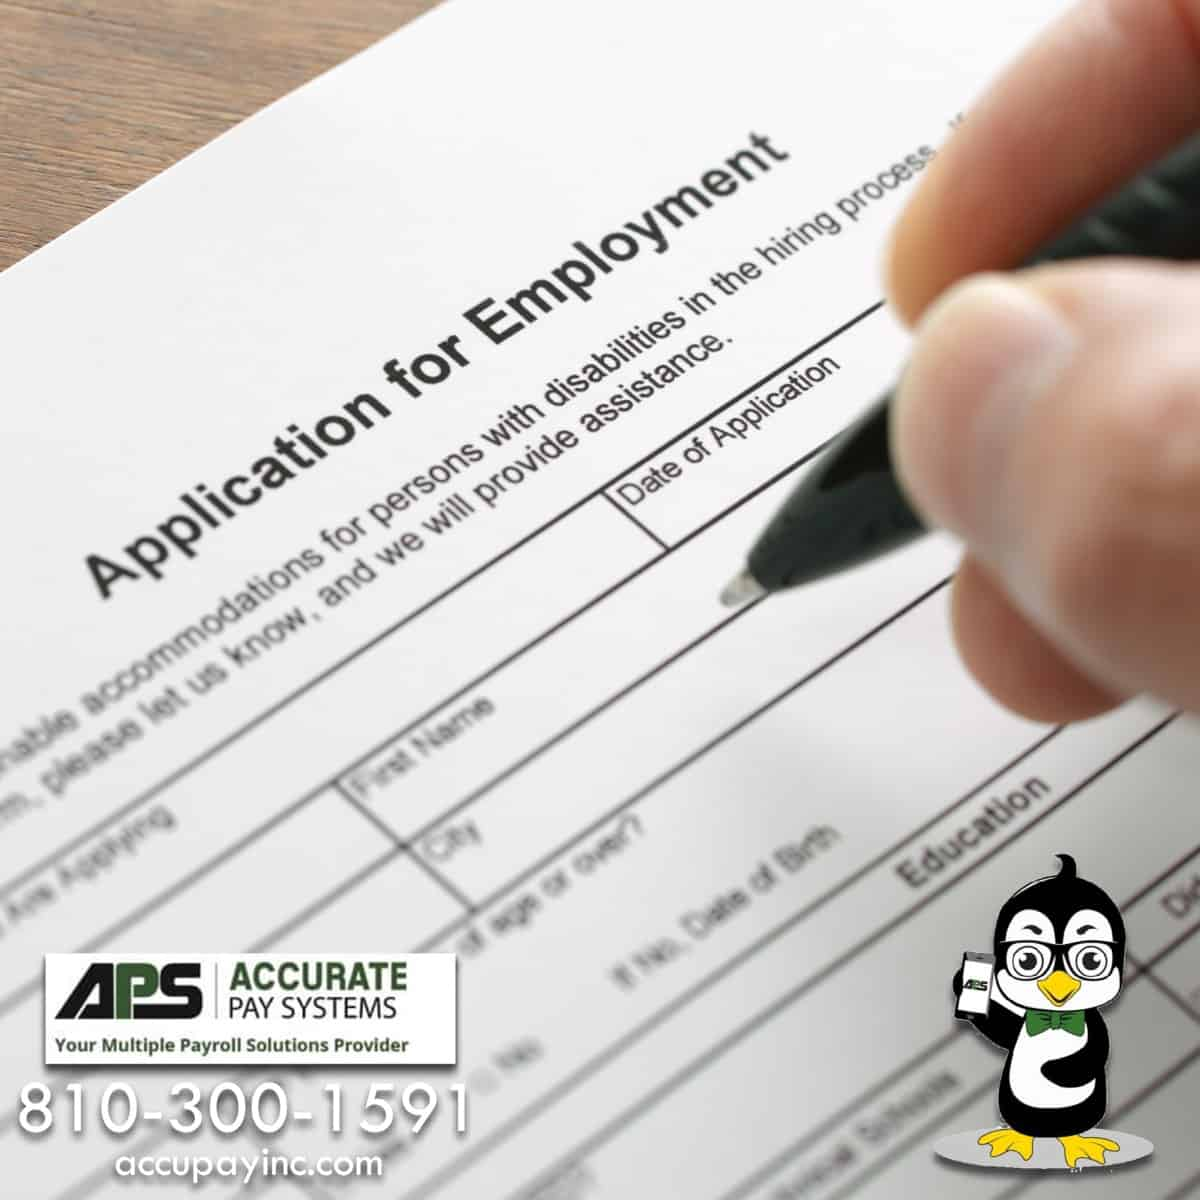 Equal Employment Opportunity from Accurate Pay Systems, Inc.